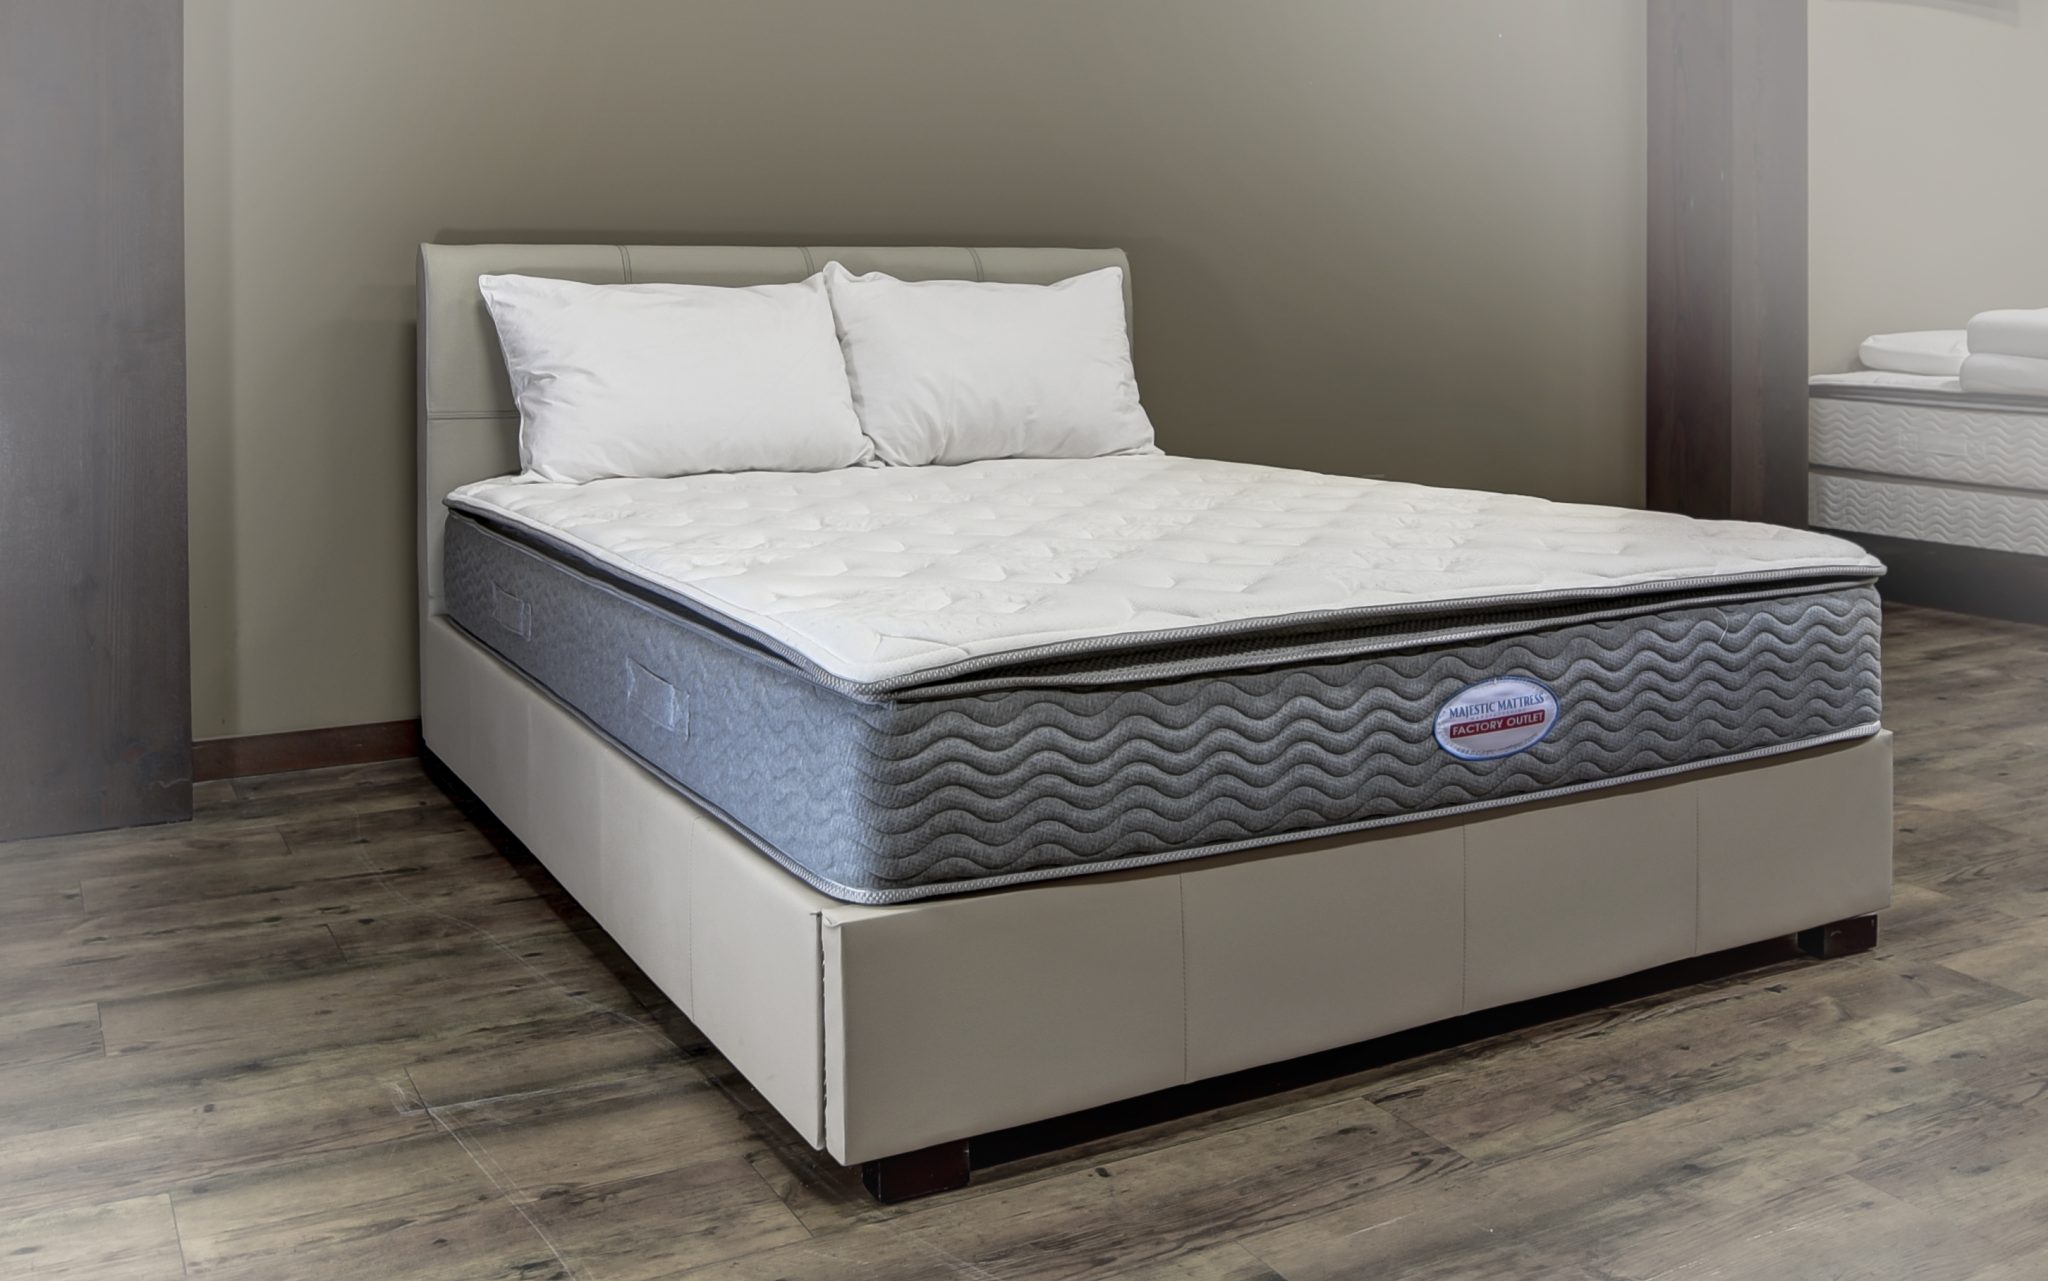 fortable of form top gel elegant pad topper mattress pillow posed beautiful fresh this design is foam dream